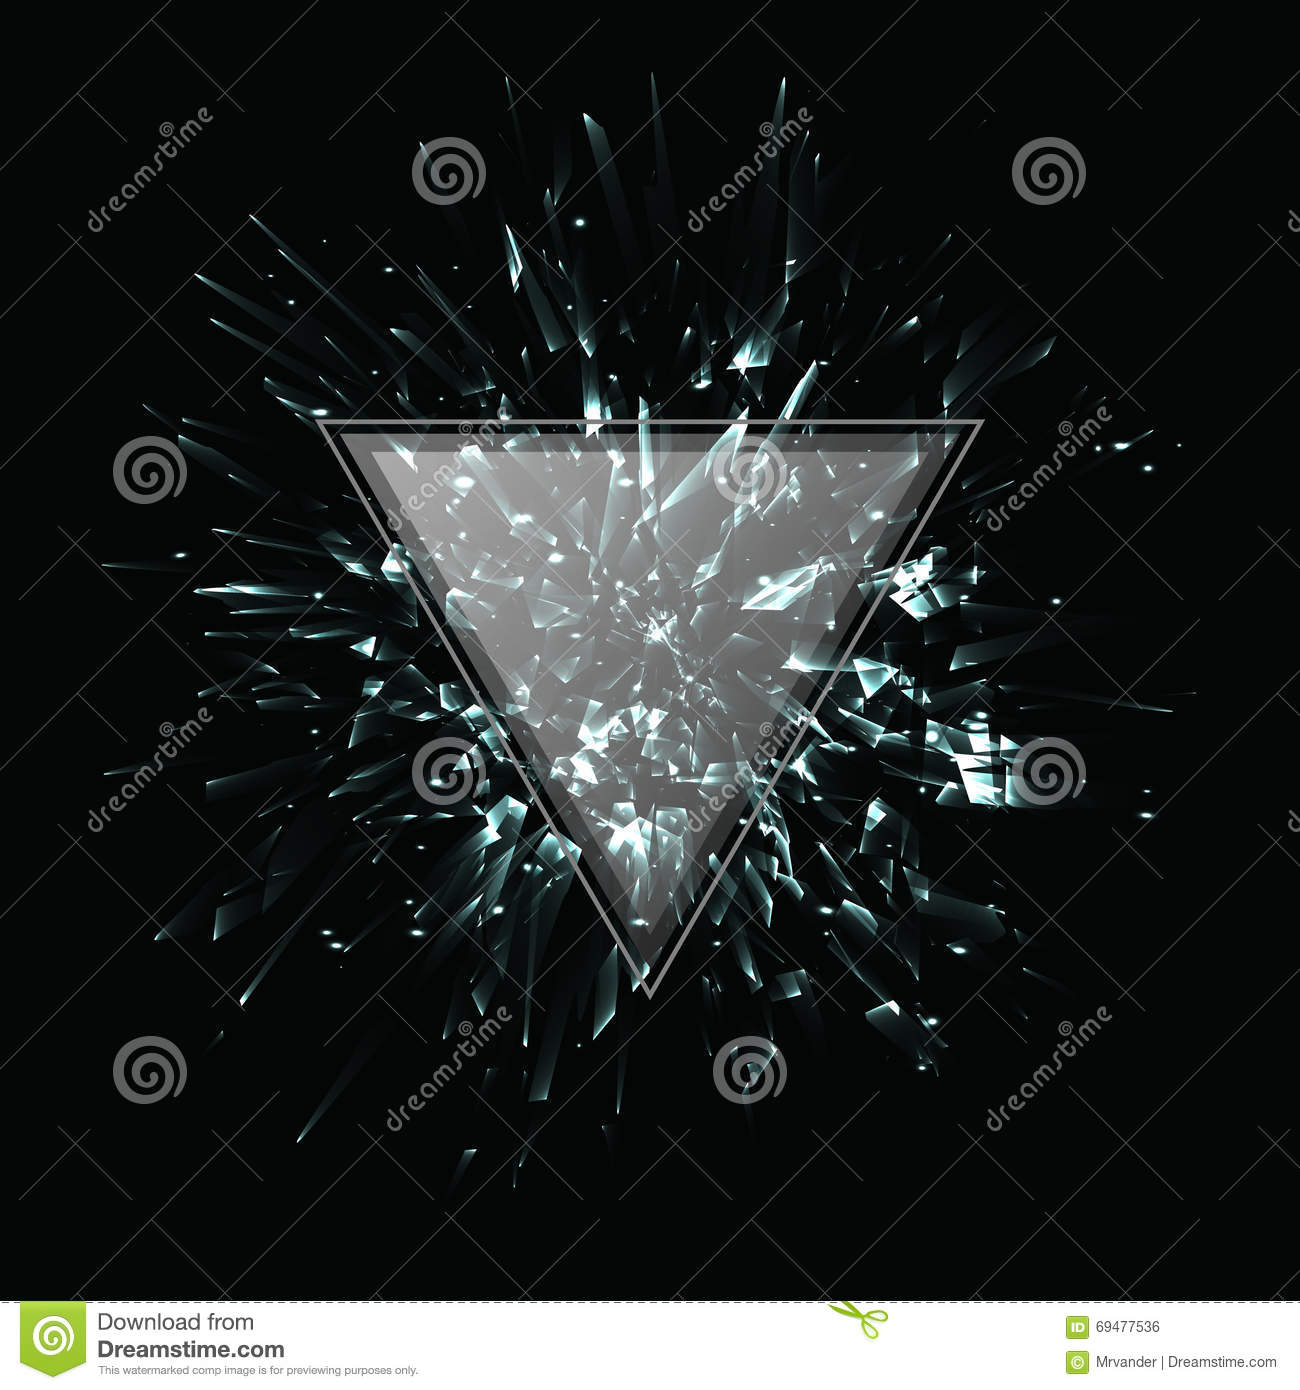 Abstract black and white vector explosion. Triangular frame